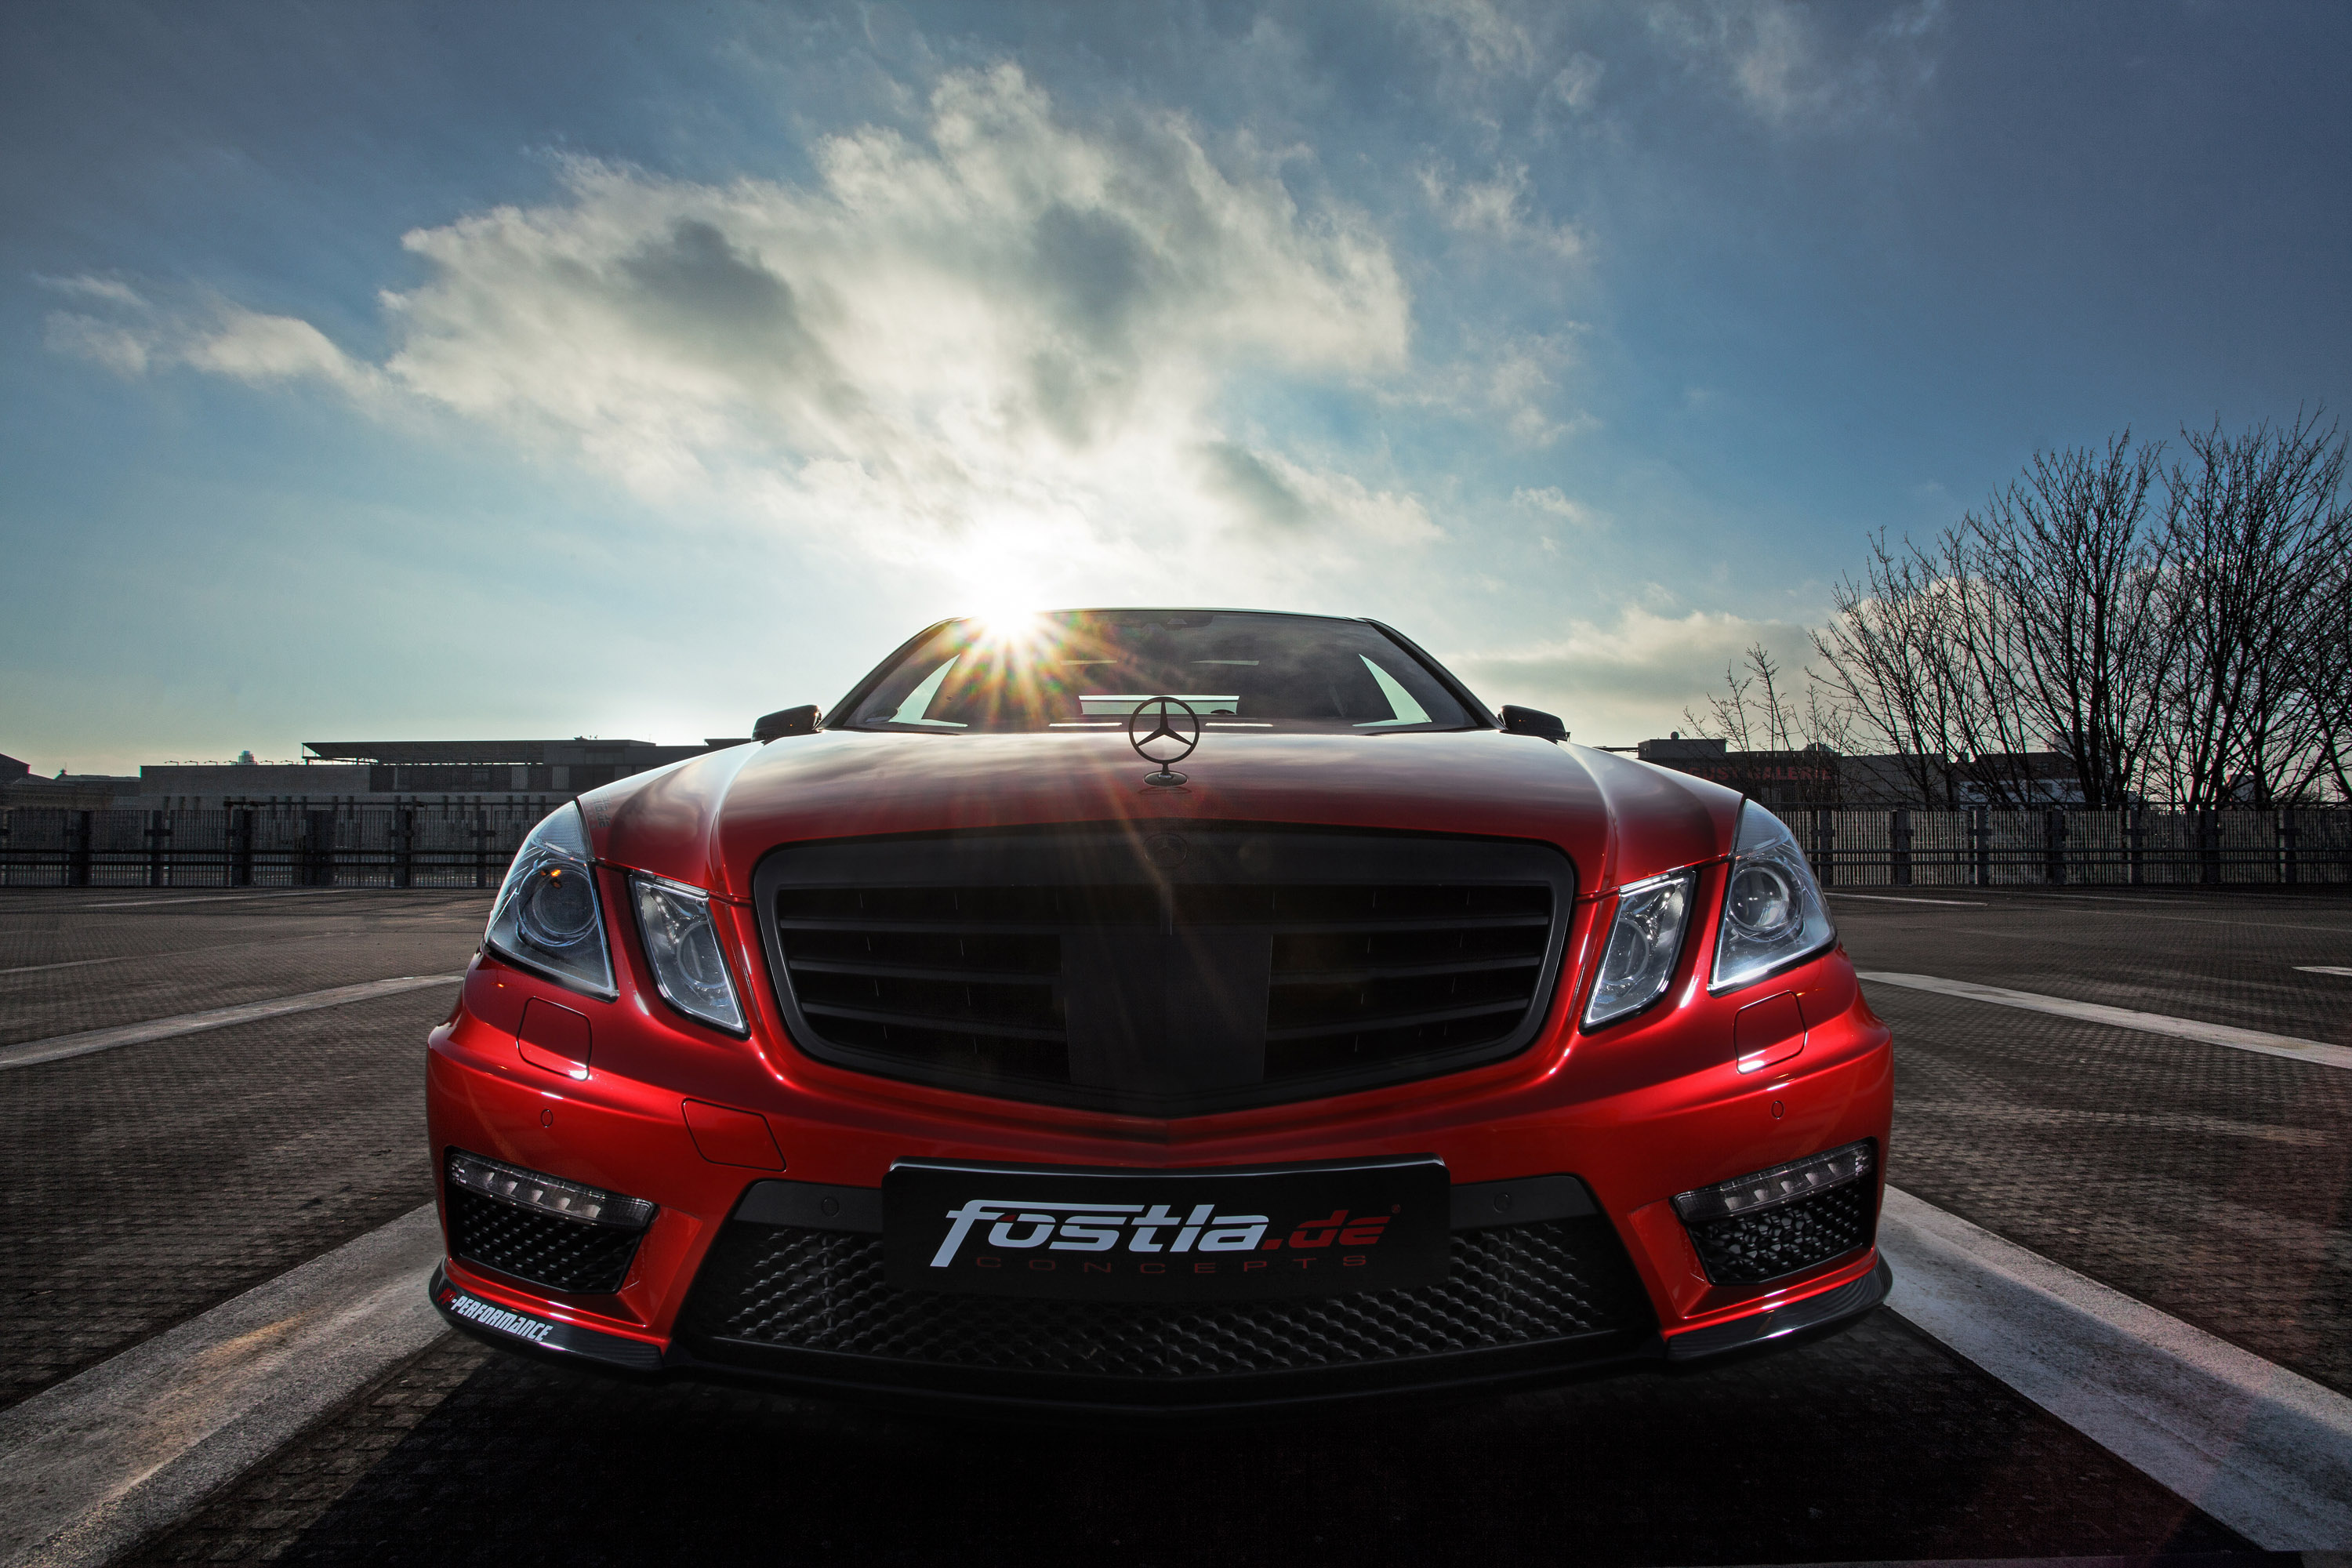 Mercedes Benz E 63 Amg W212 Wows With 720 Wild Horses